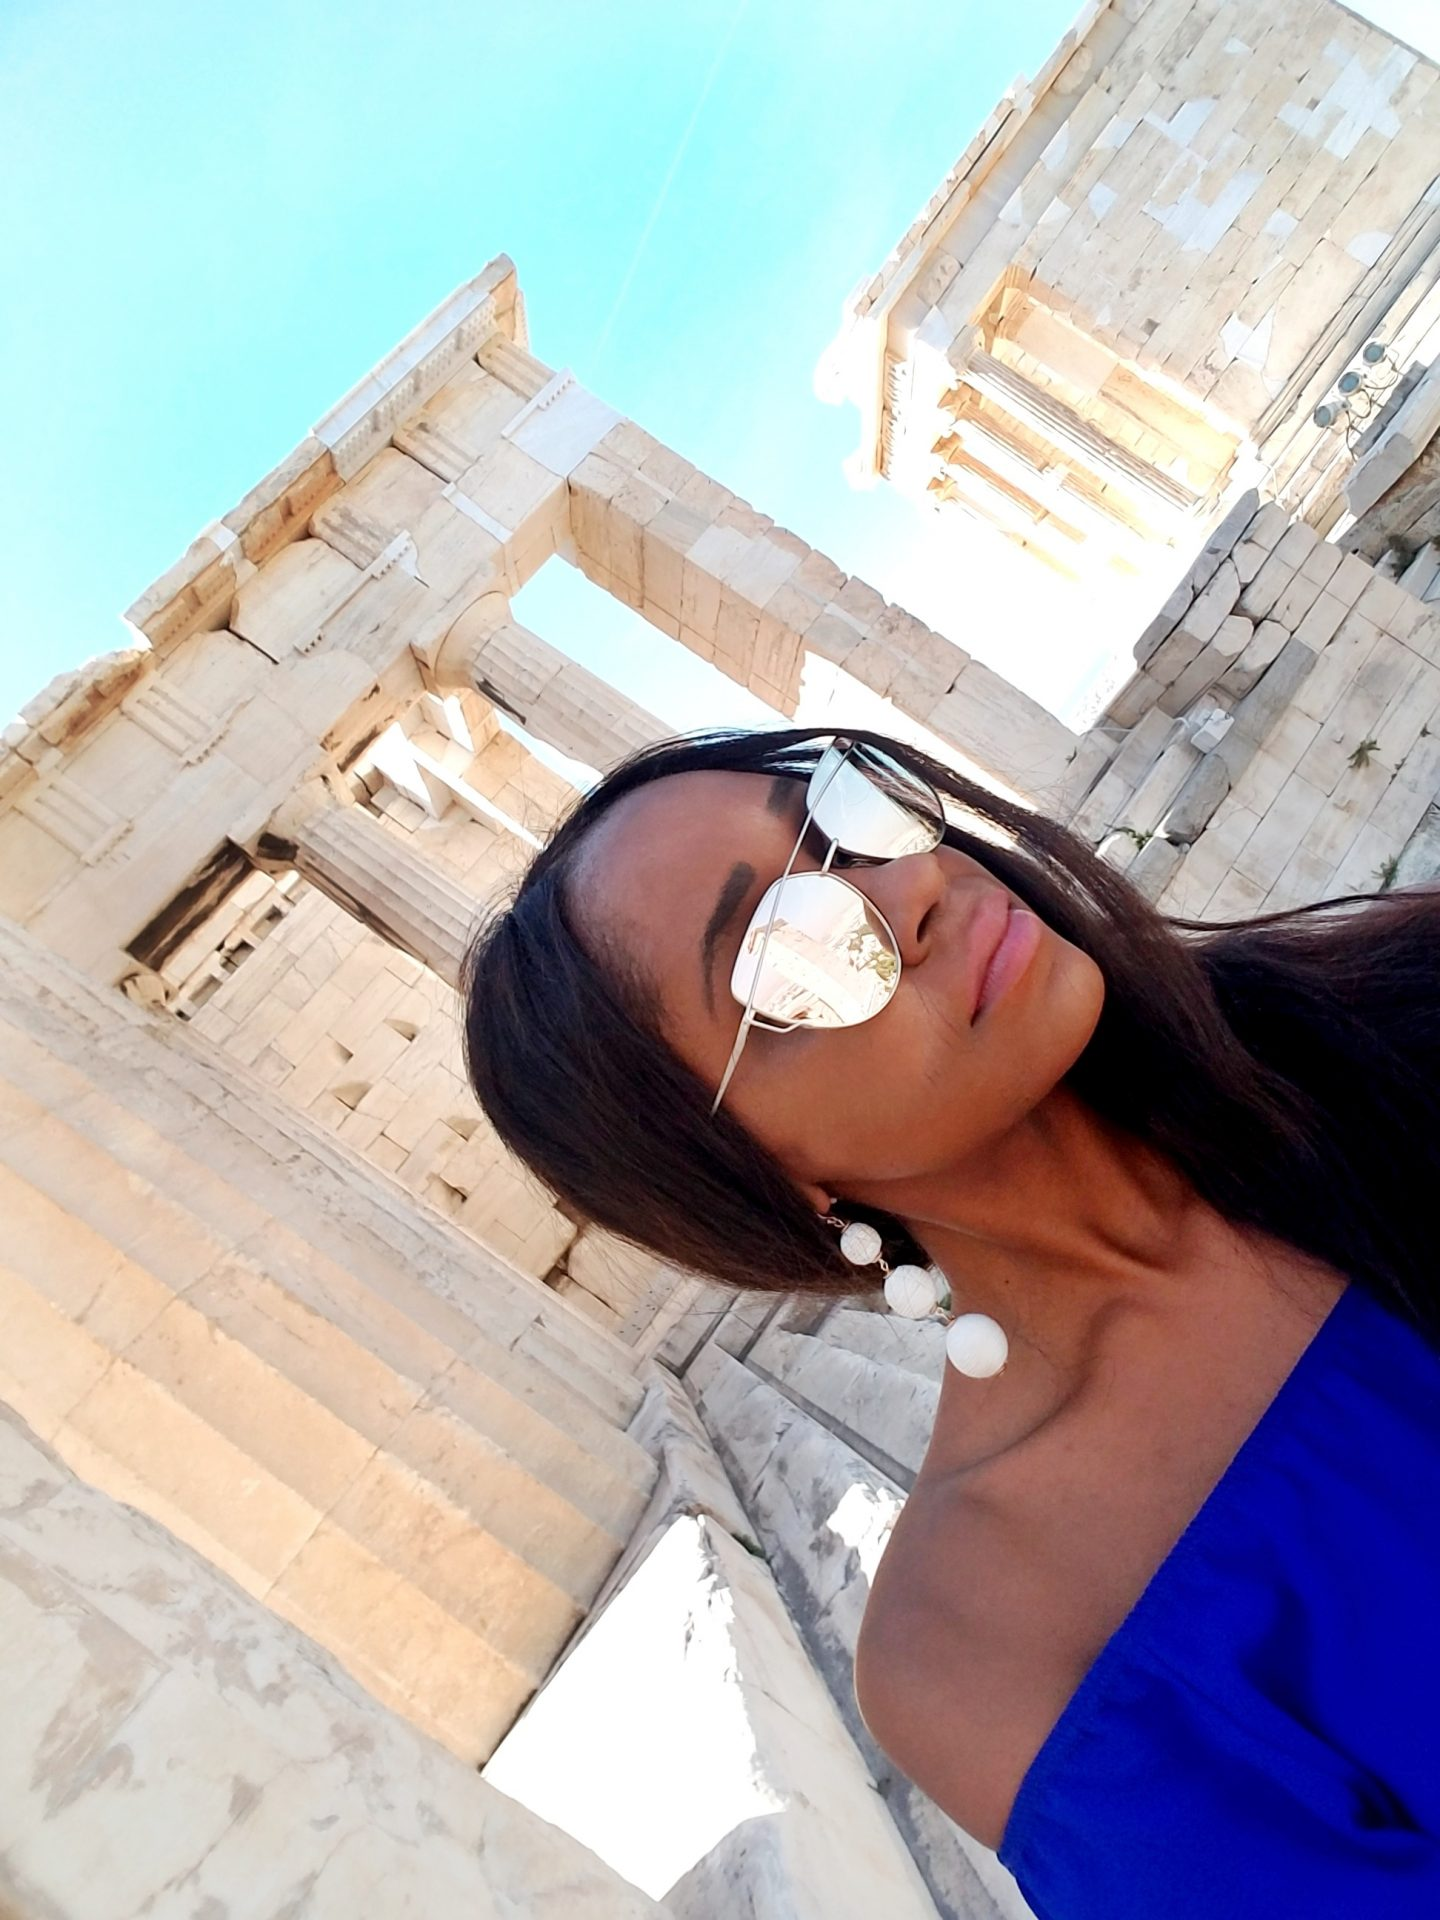 The Best of Athens Greece & The Acropolis